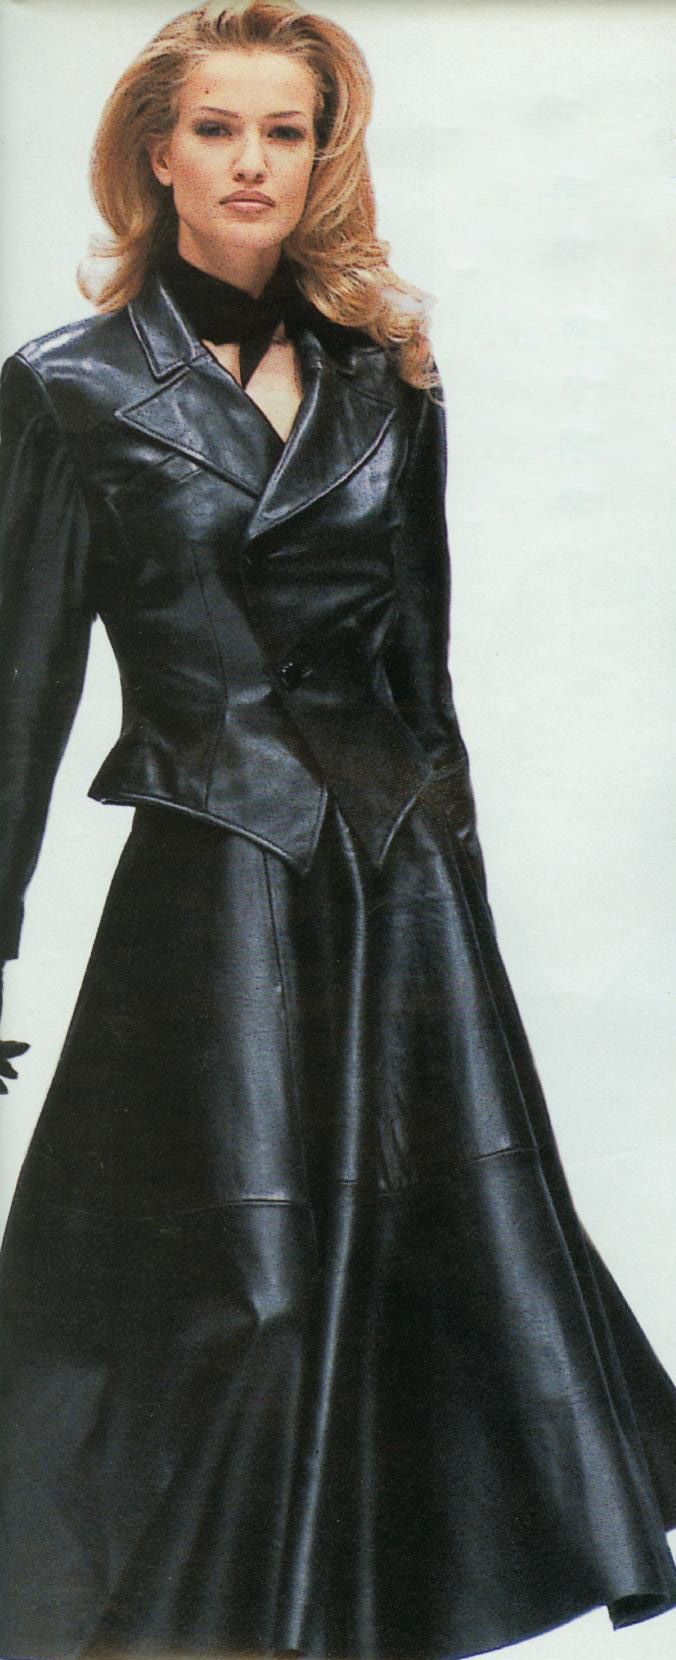 Some of the best leather fashions came out of the 80s and 90s - Karen Mulder for…